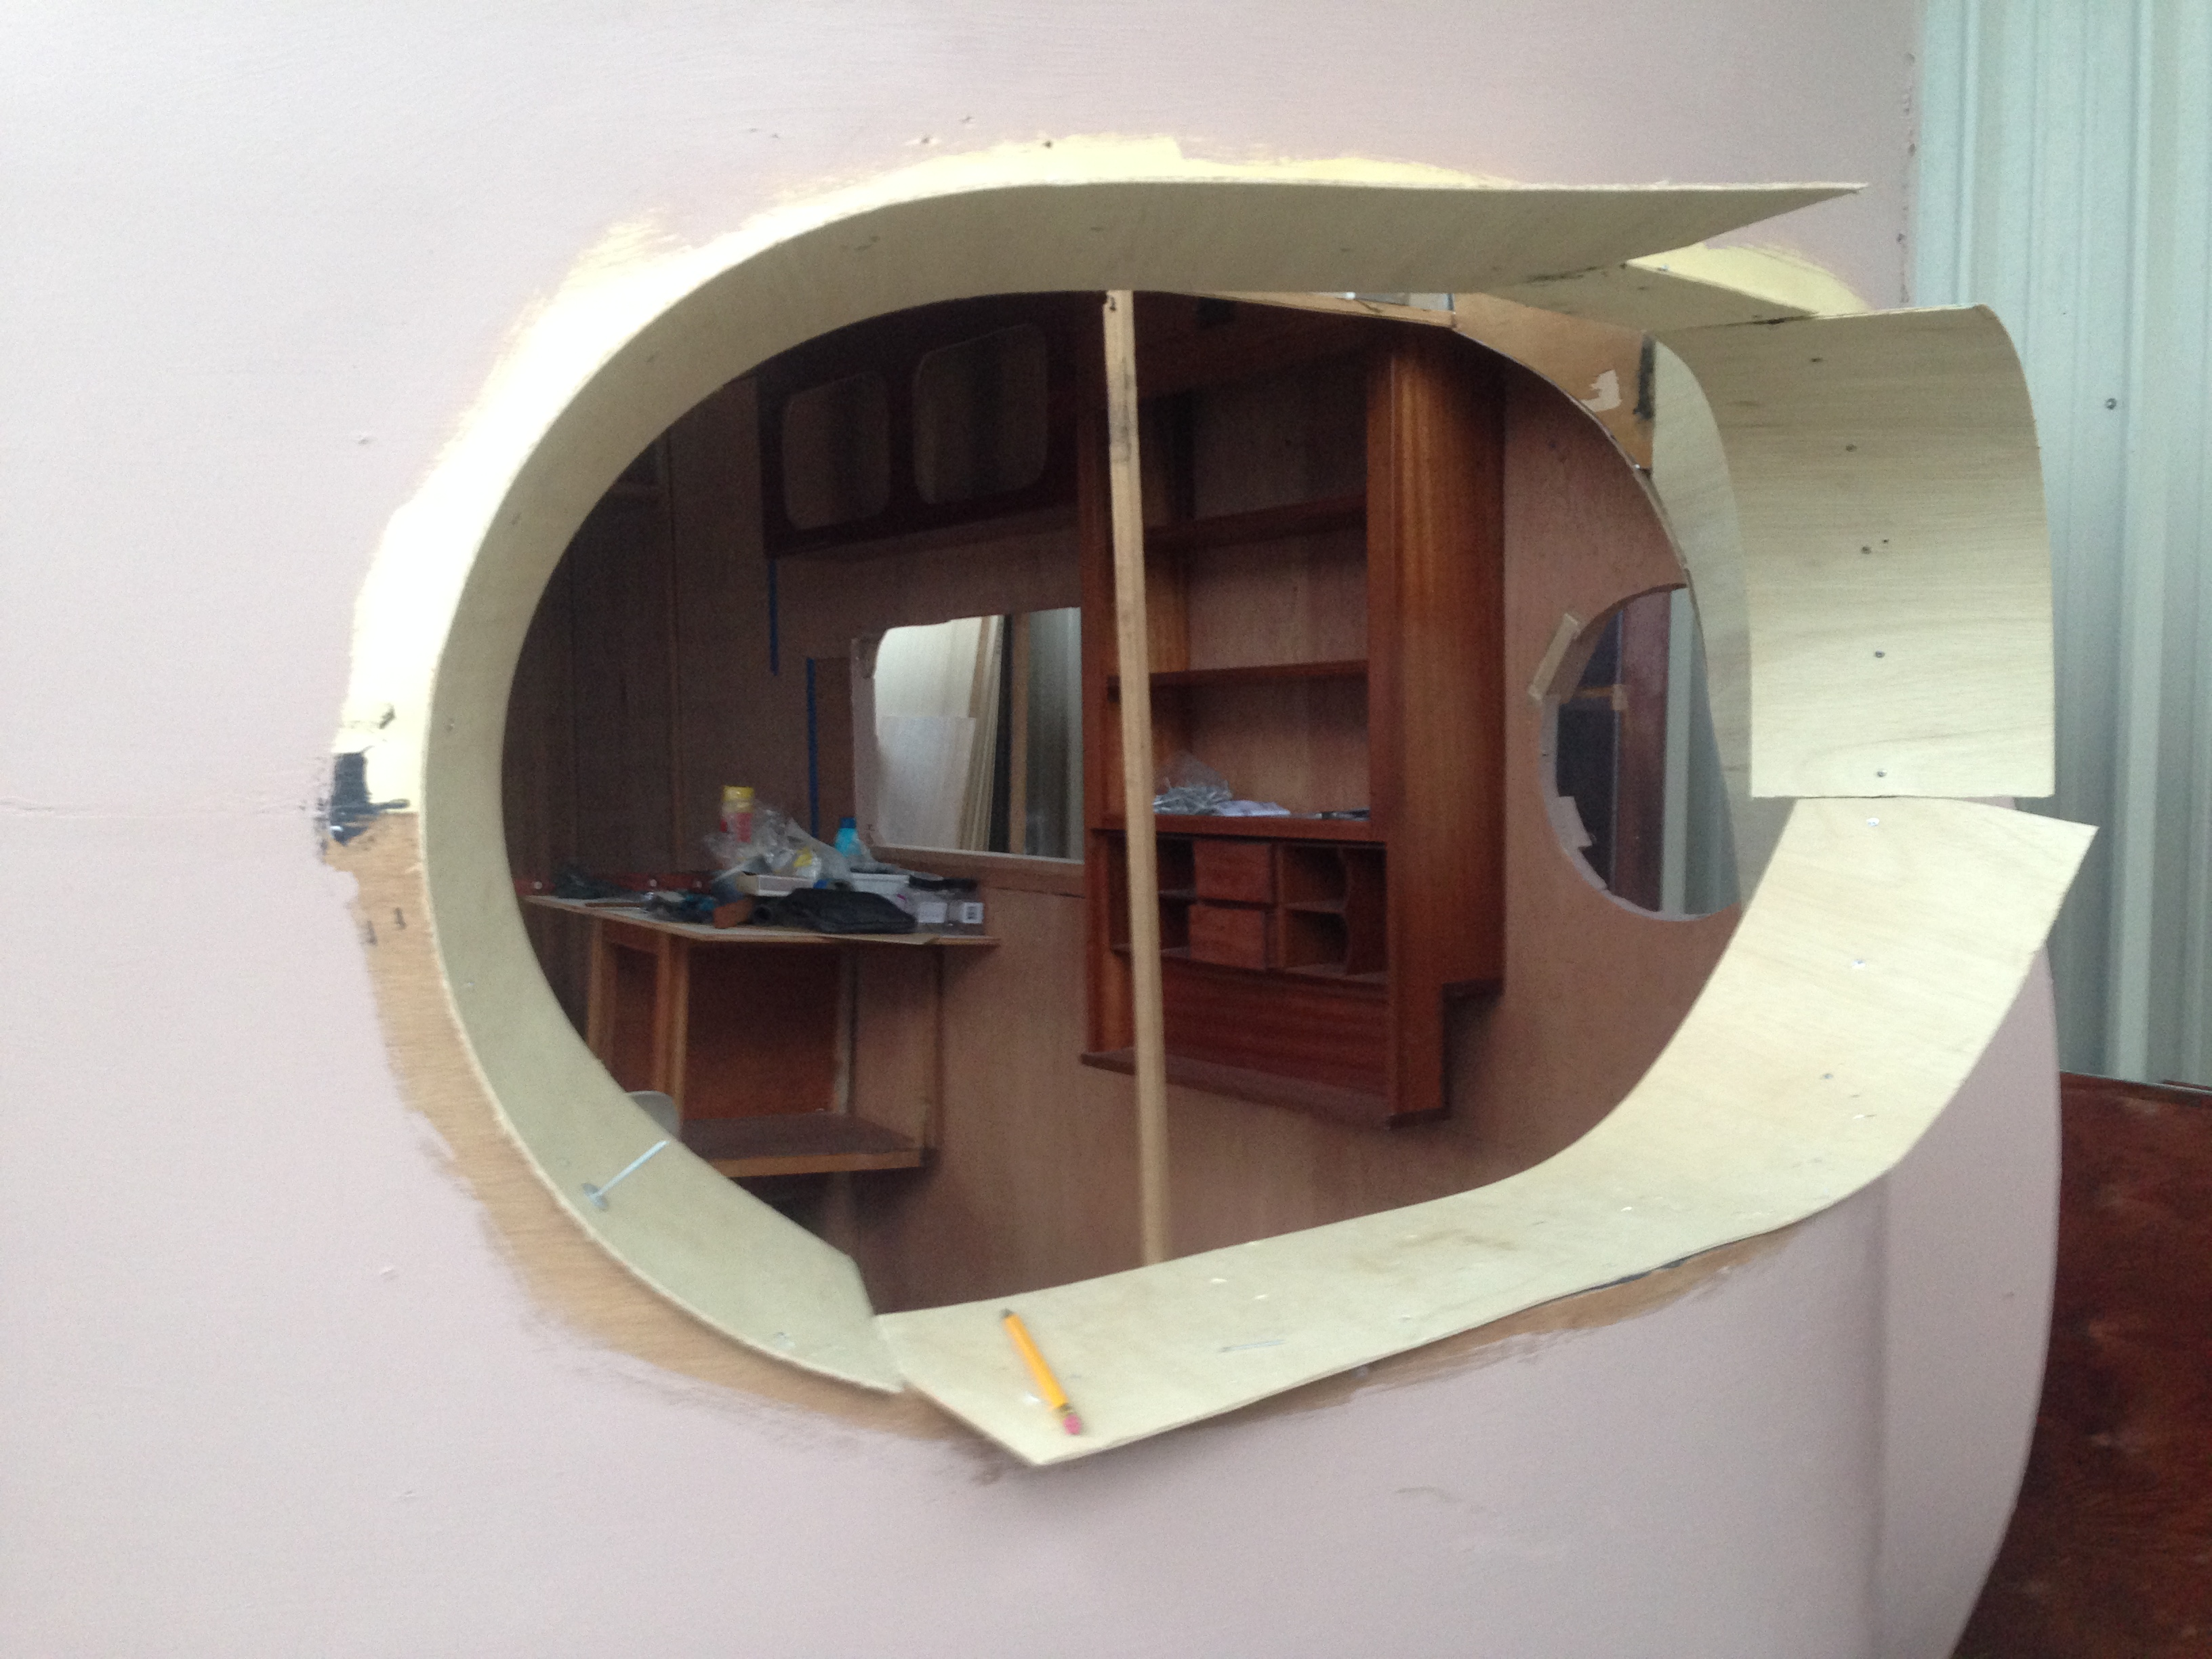 Plywood around front window